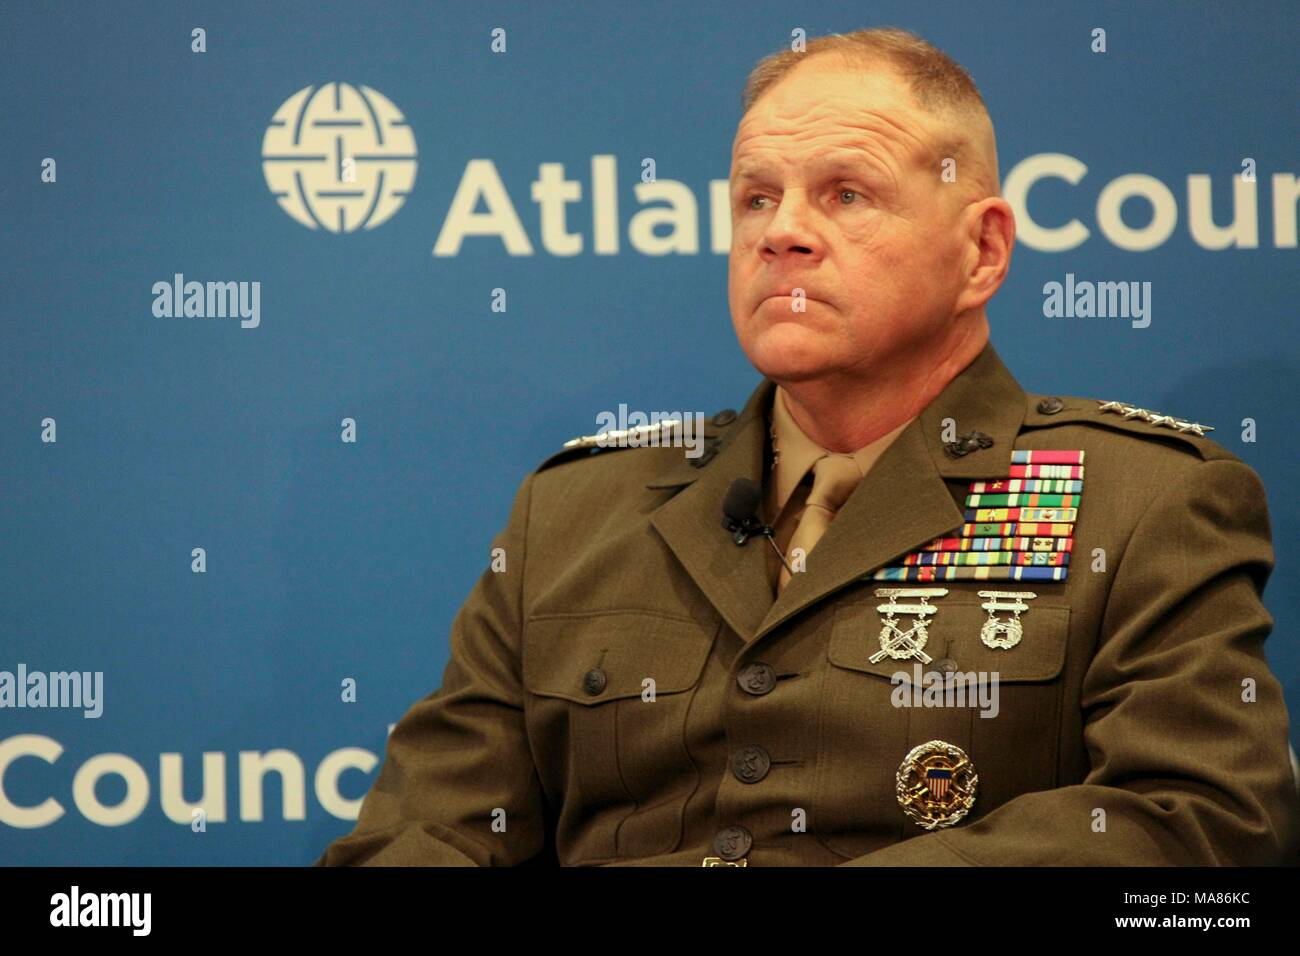 Commandant of the Marine Corps Gen. Robert B. Neller speaks to guests at the Atlantic Council, Washington, D.C., March 29, 2018. Neller spoke about the National Defense Strategy and the Marine Corps. (U.S. Marine Corps photo by Sgt. Olivia G. Ortiz) Stock Photo